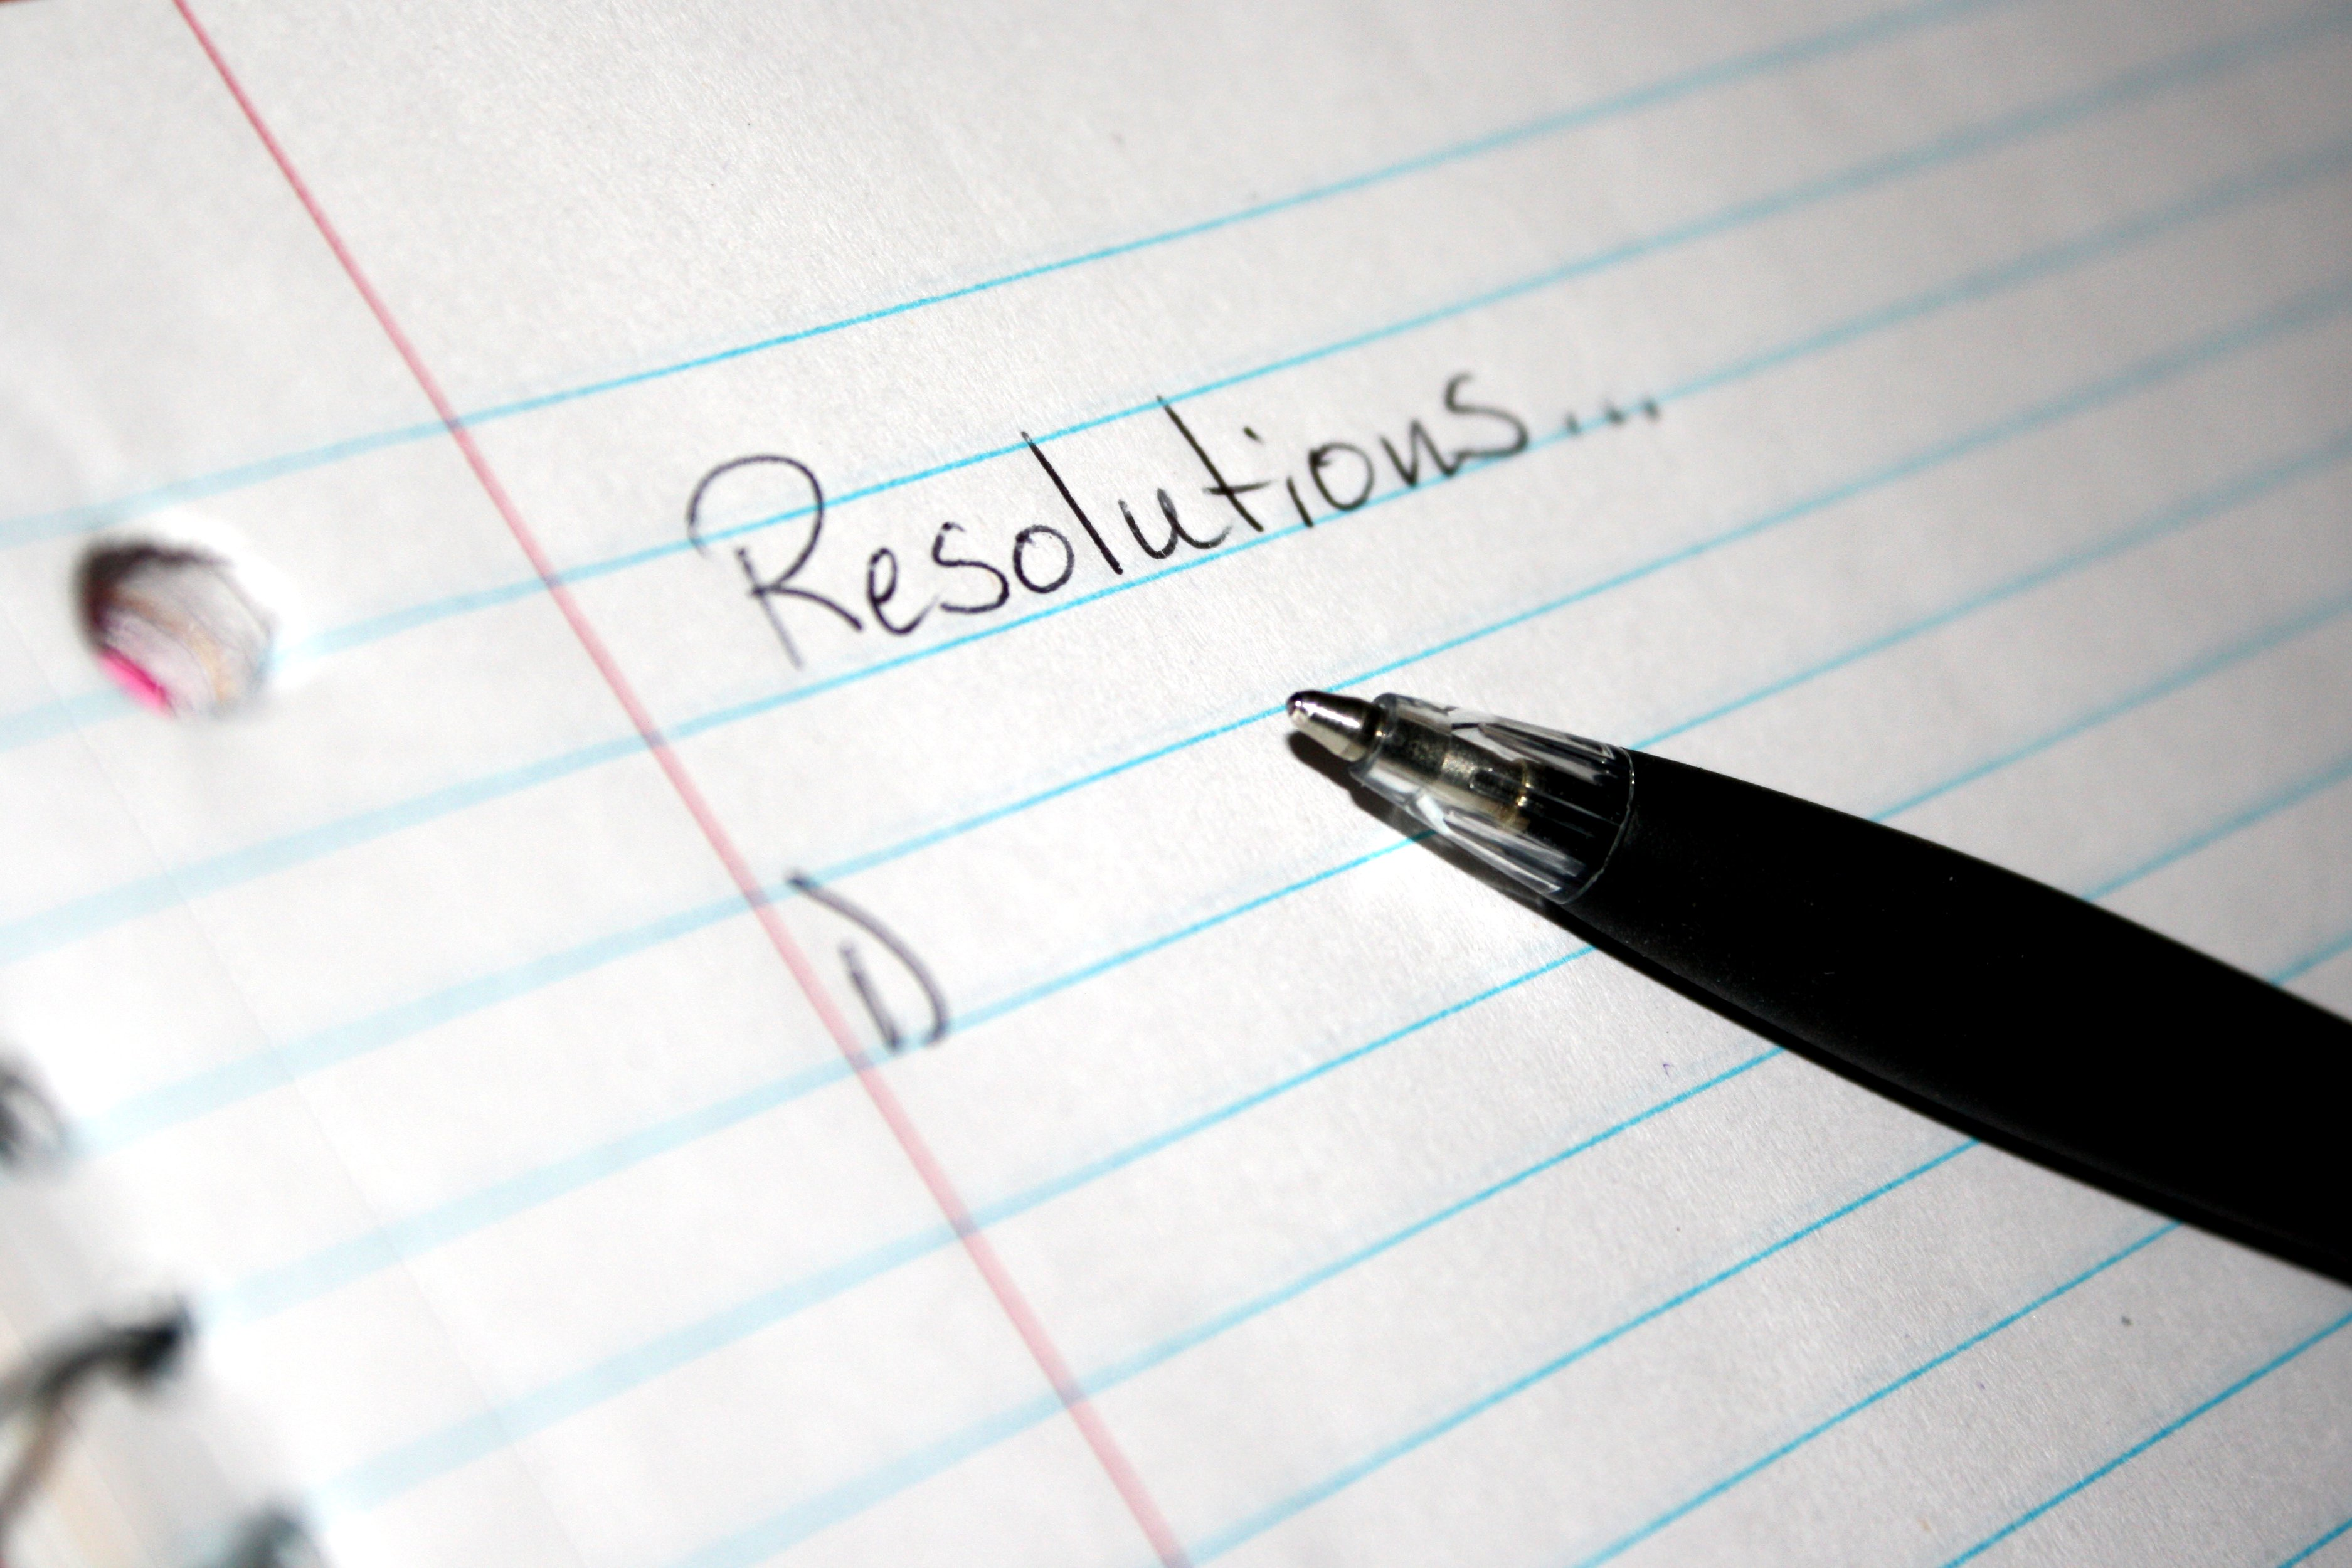 How To Stop The New Year's Resolution Cycle… (With Mini-Goals)